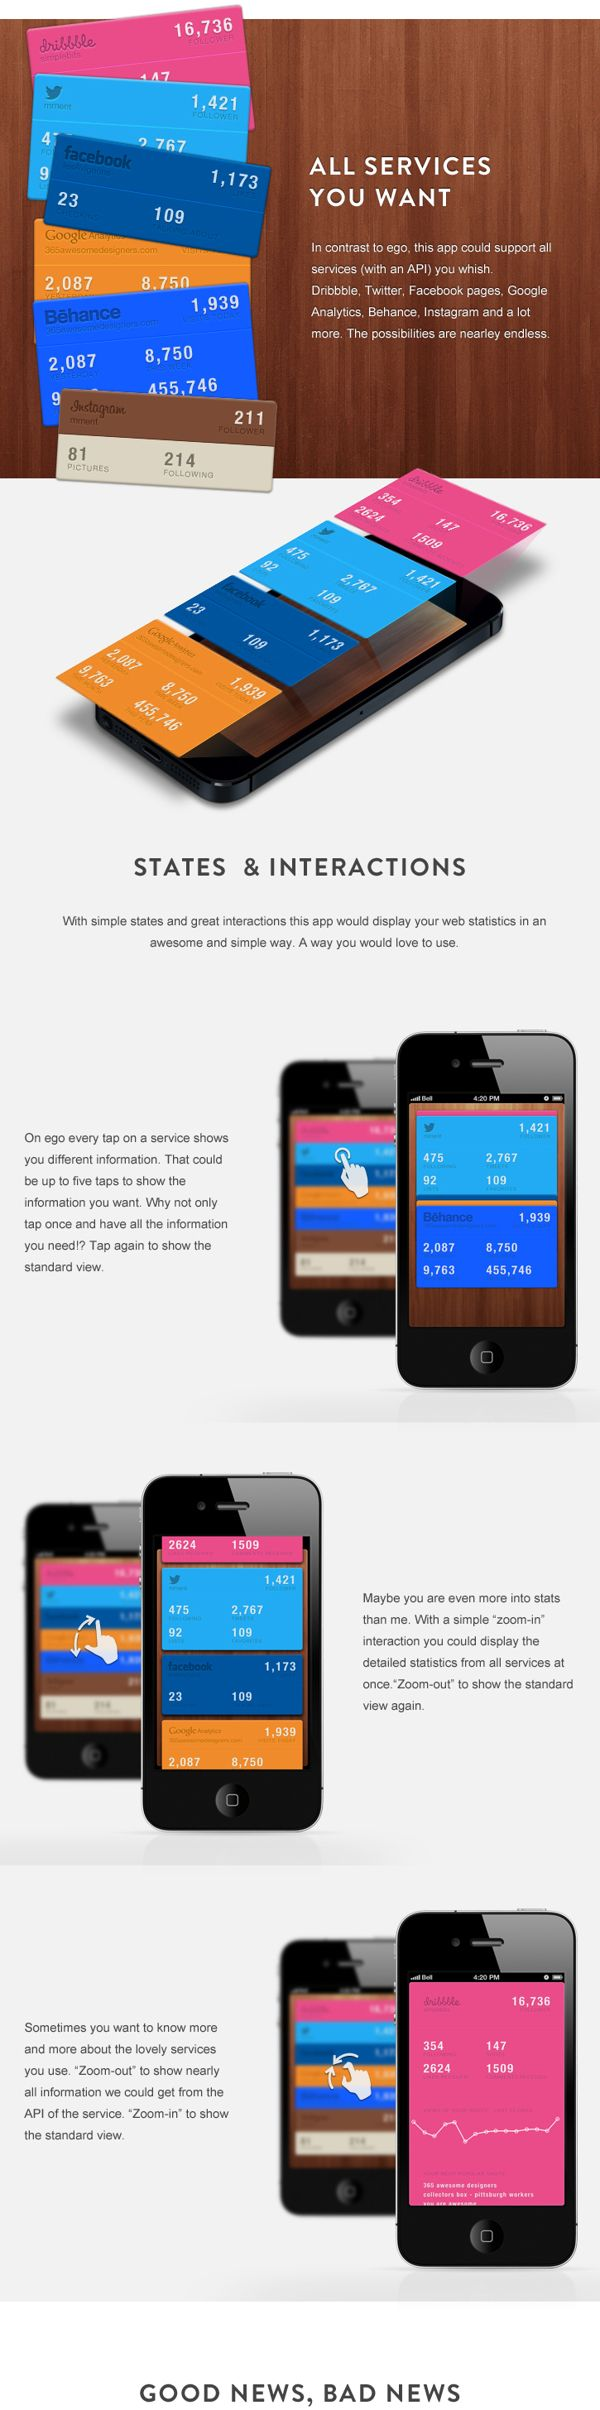 web stats app by Matthias Mentasti, via Behance